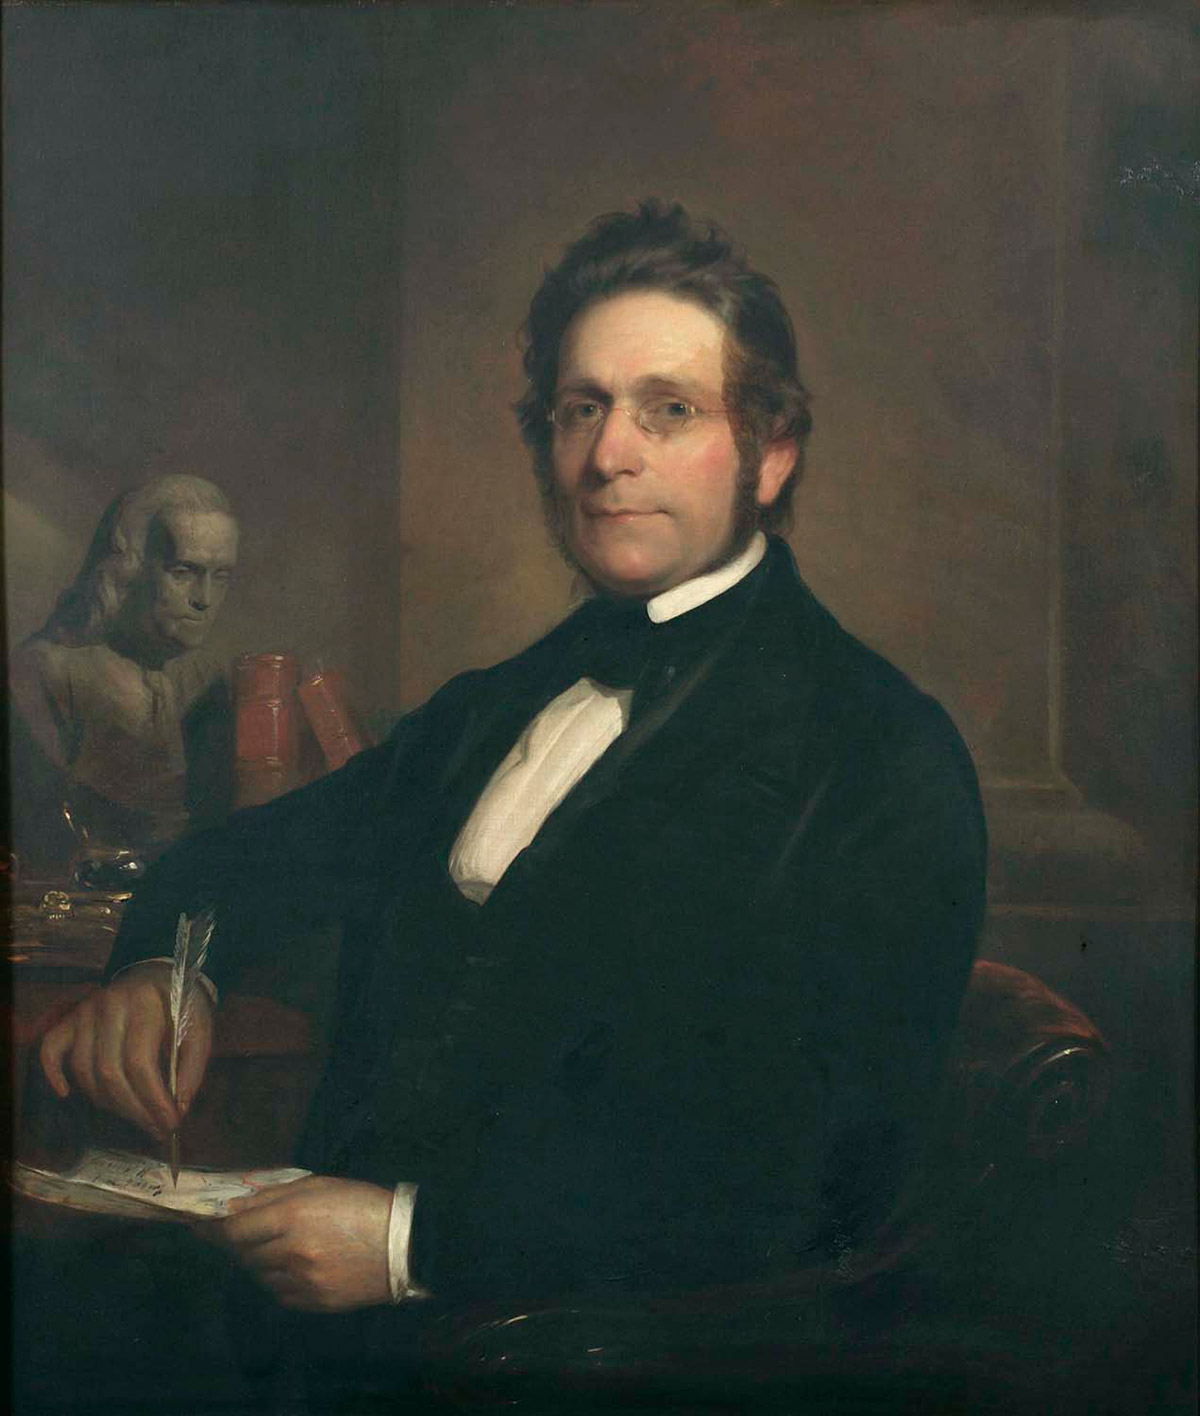 Official City Hall portrait of James Harper